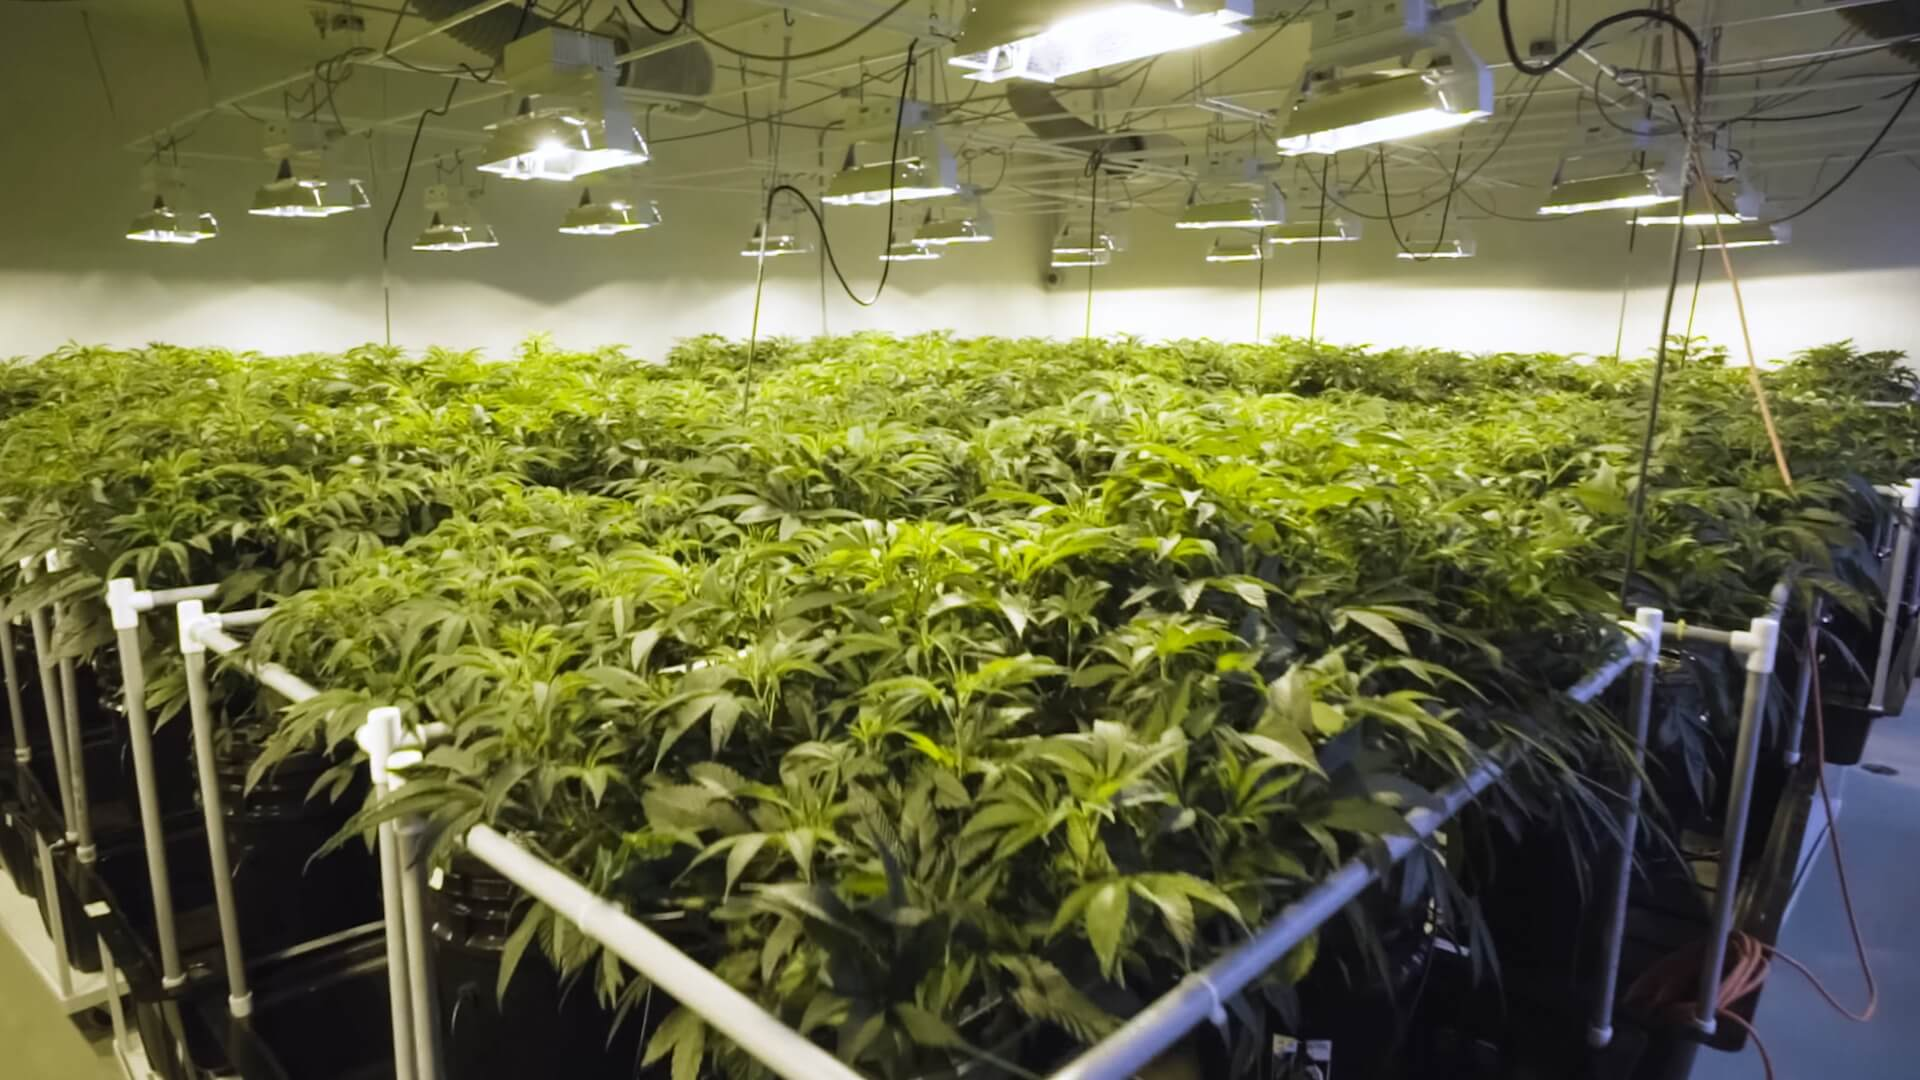 Cannabis plants growing in a hydroponic garden bed